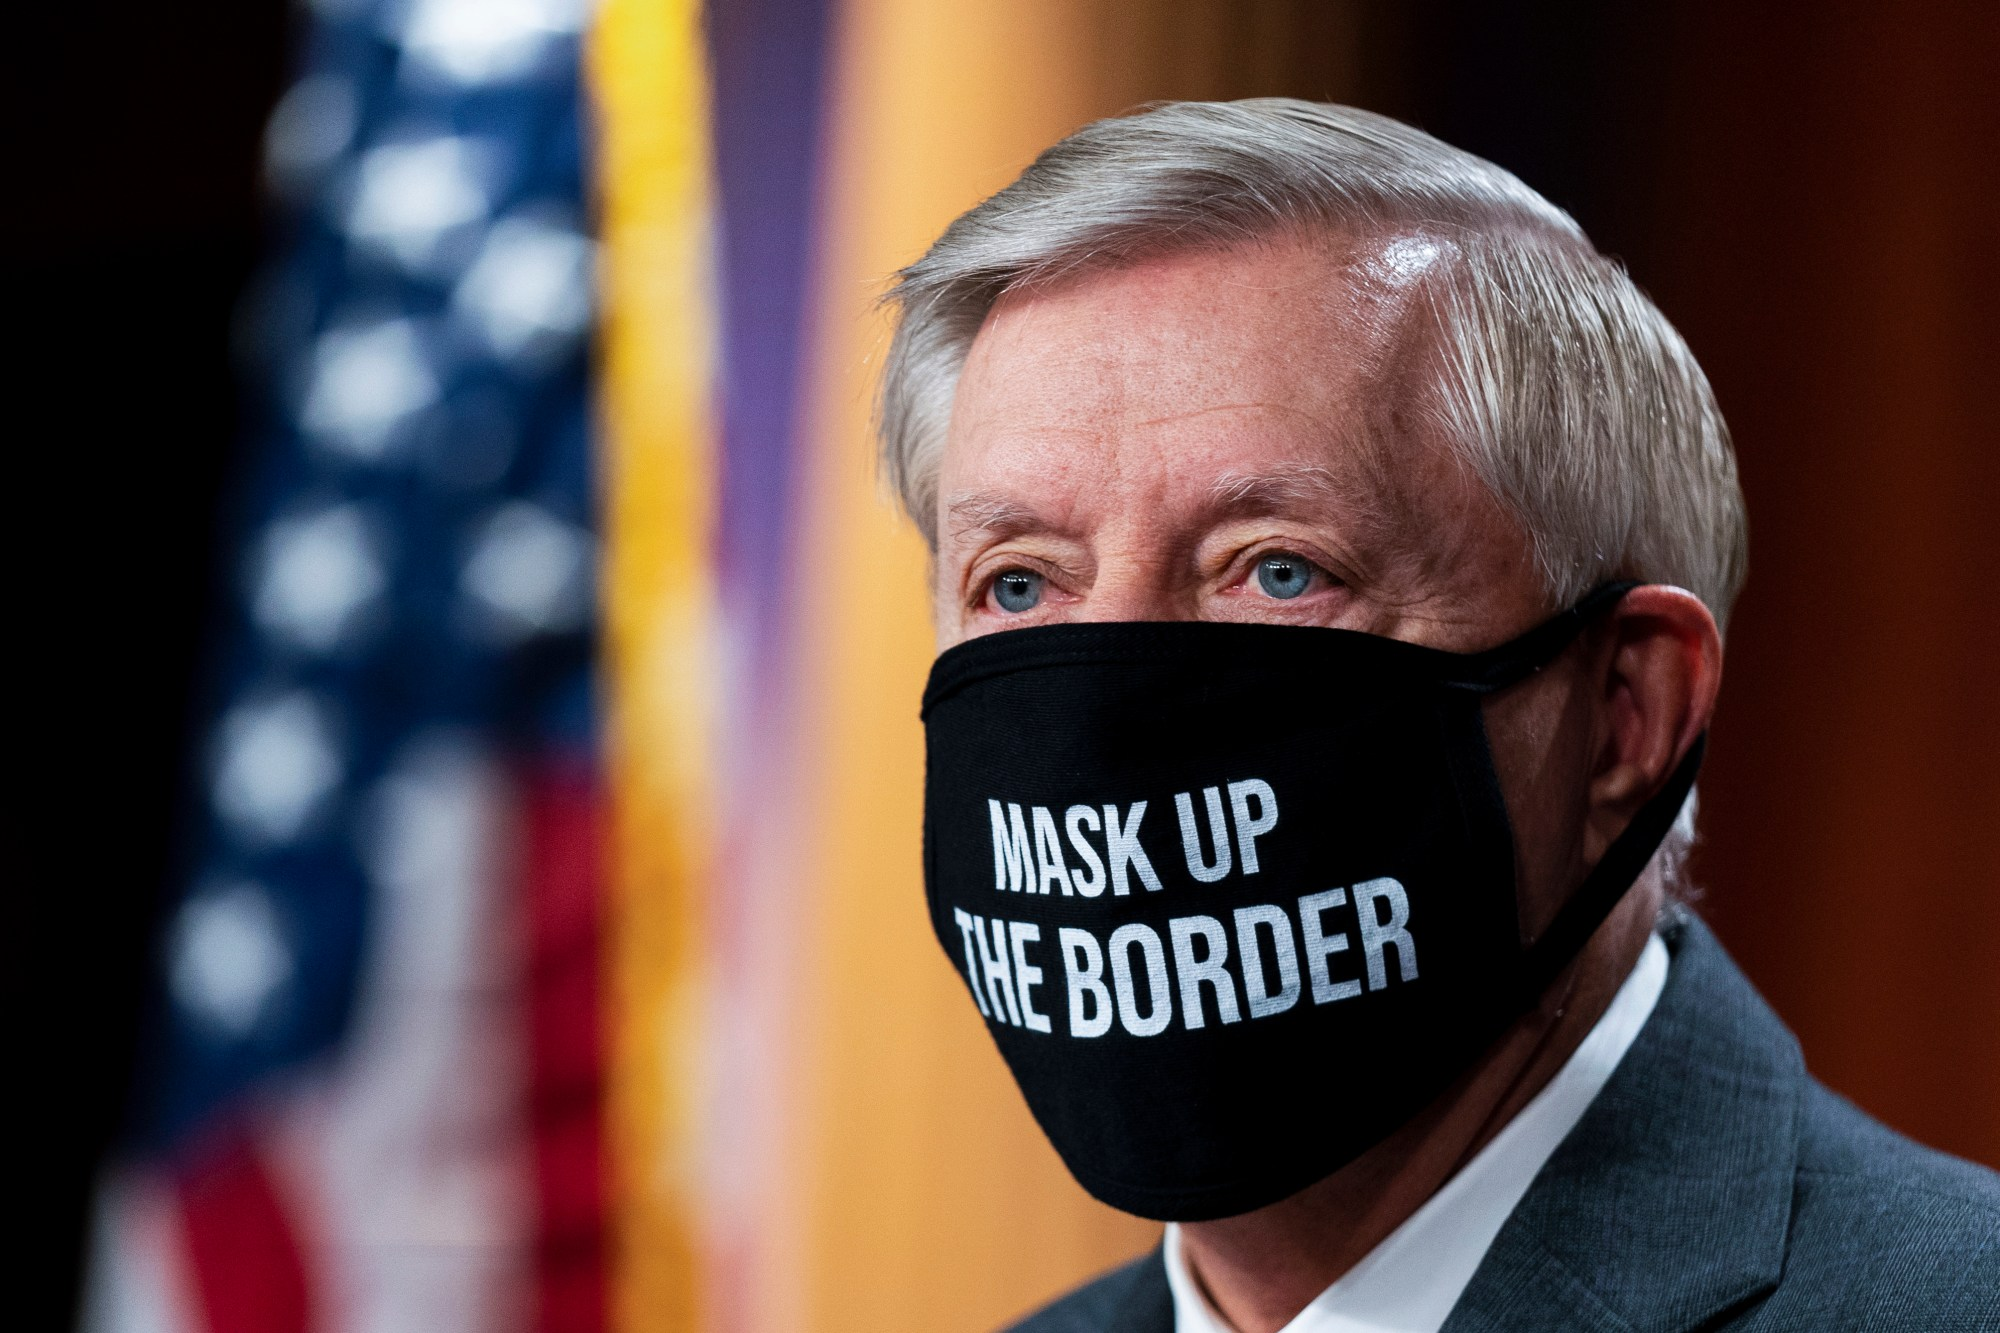 Sen. Lindsey Graham, R-S.C., wearing a mask, takes a pause at the start of a news conference about the United States/Mexico border at the Capitol in Washington, Friday, July 30, 2021. (AP Photo/Manuel Balce Ceneta)